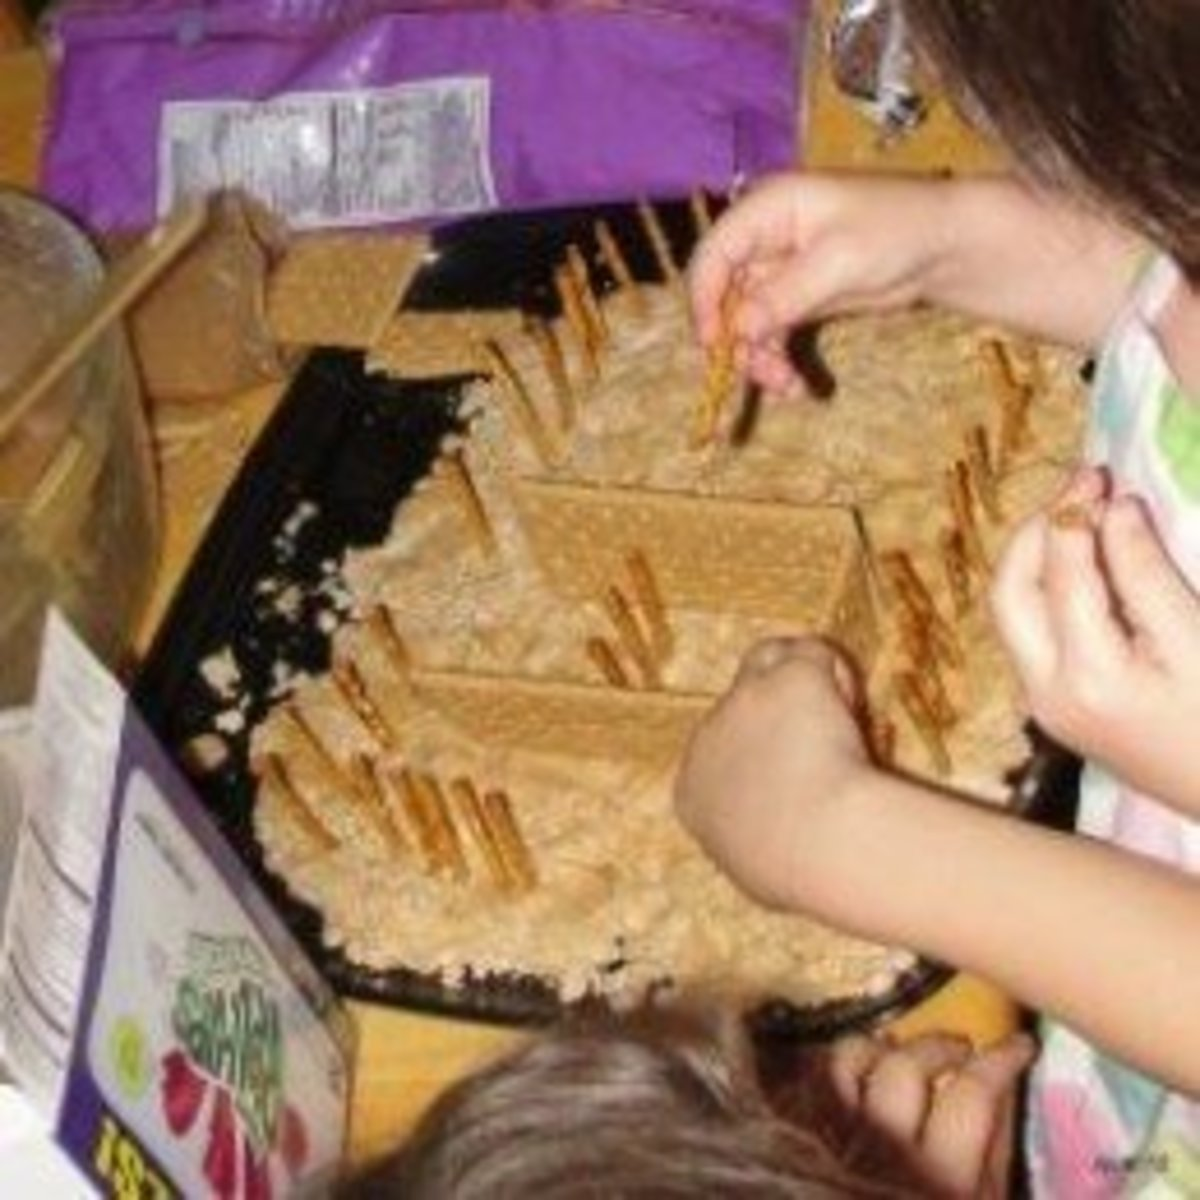 Creating an edible model of the tabernacle